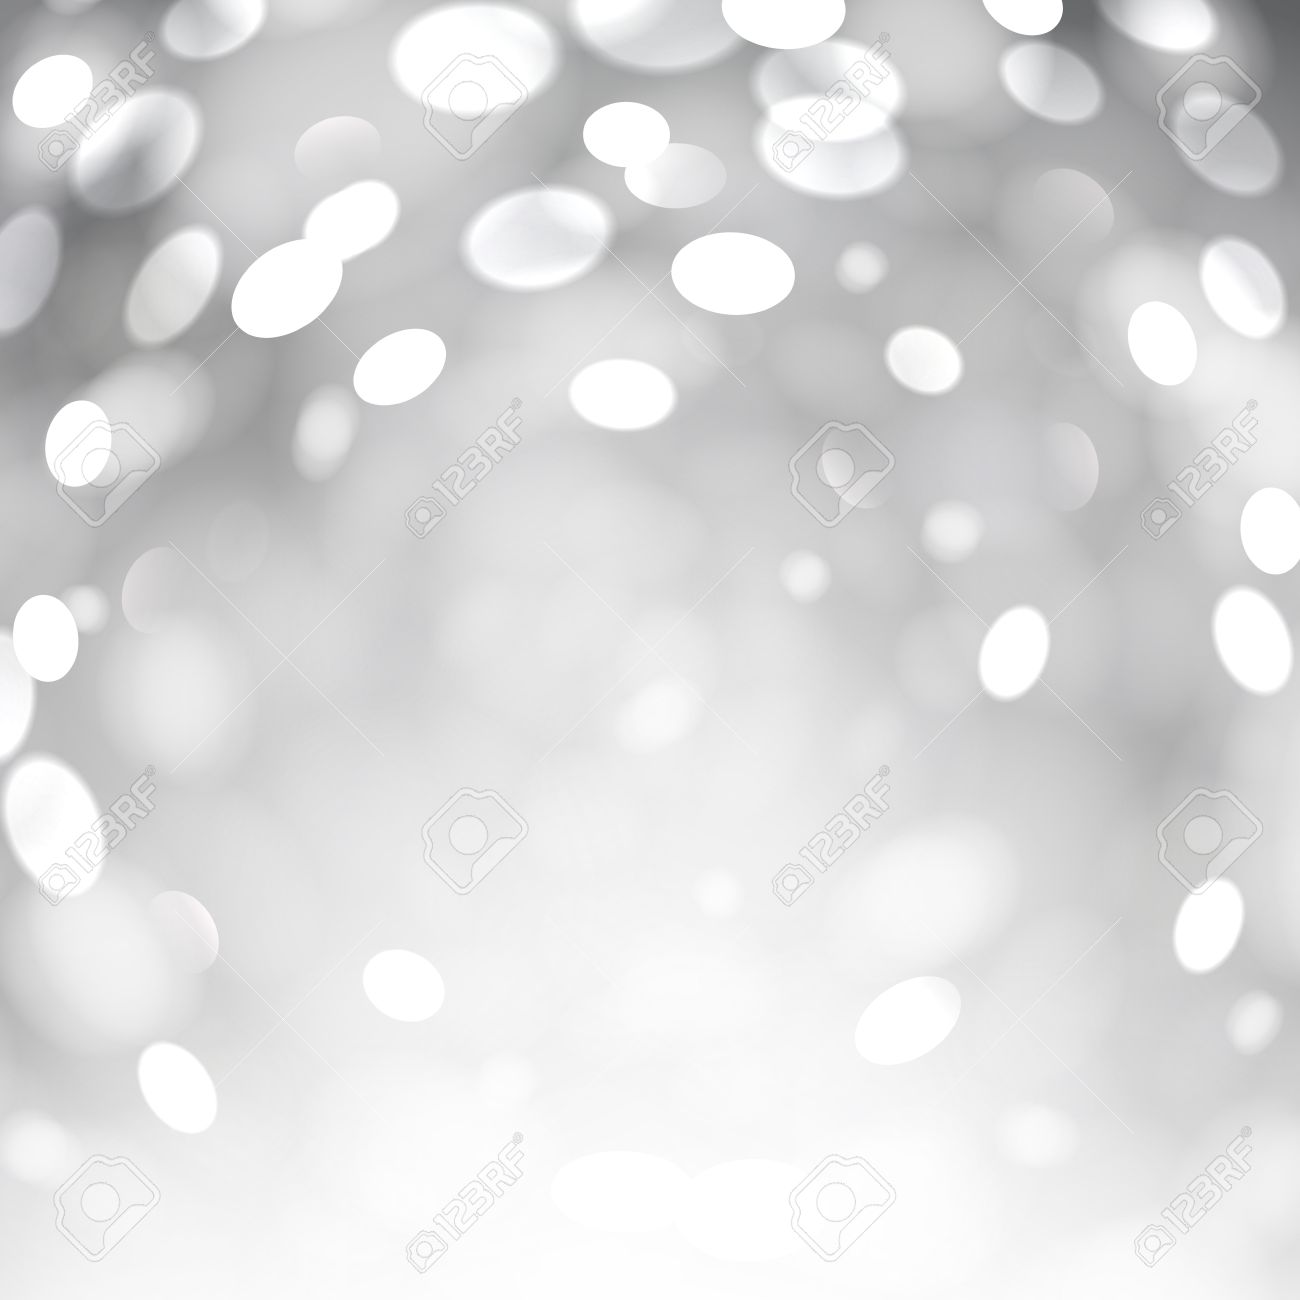 Background image rotate - Bokeh Abstract Grey Background With Rotate Lights Vector Illustration Stock Vector 32143959